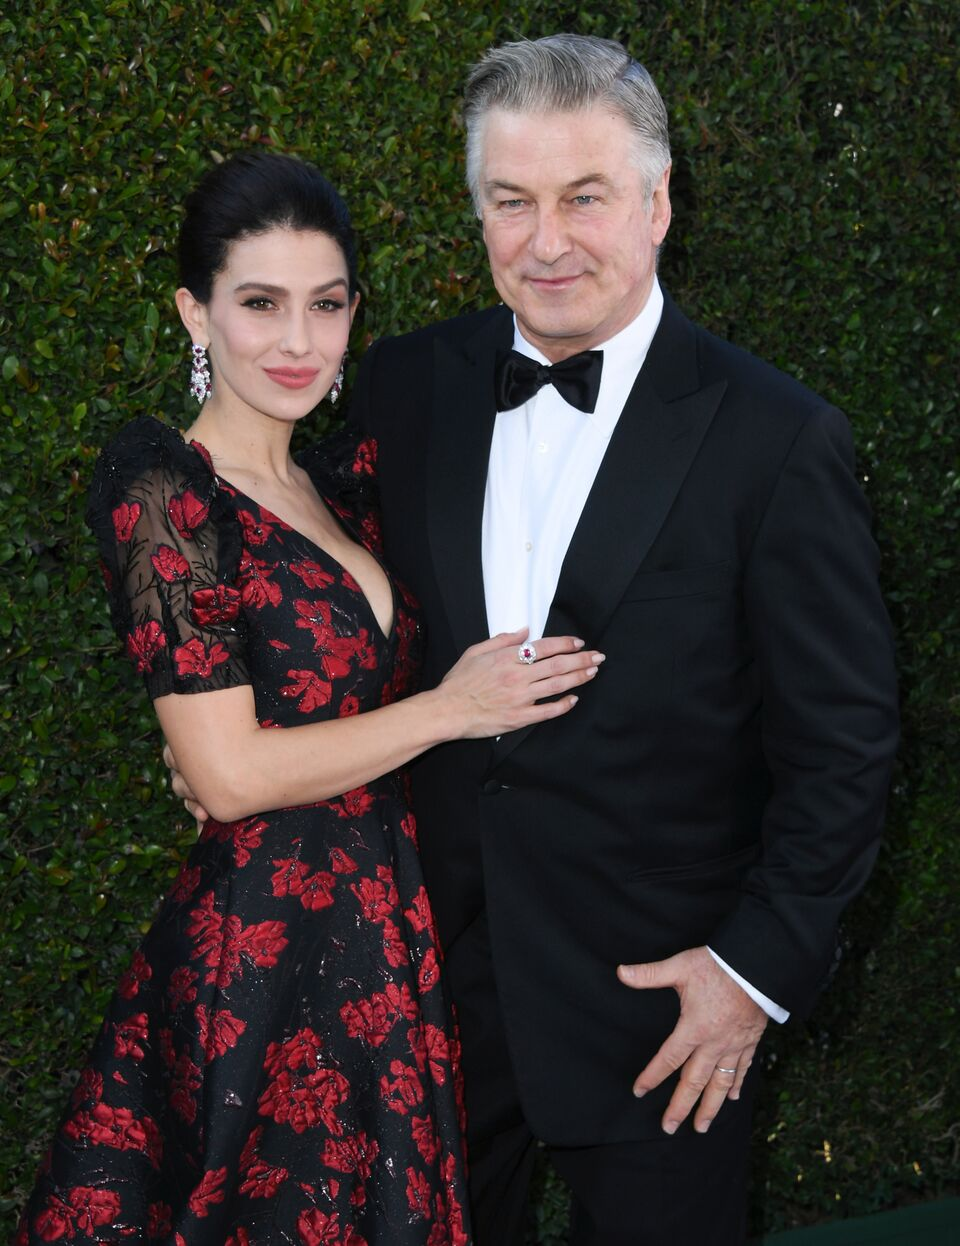 Hilaria Baldwin and Alec Baldwin attend 25th Annual Screen Actors Guild Awards. | Source: Getty Images